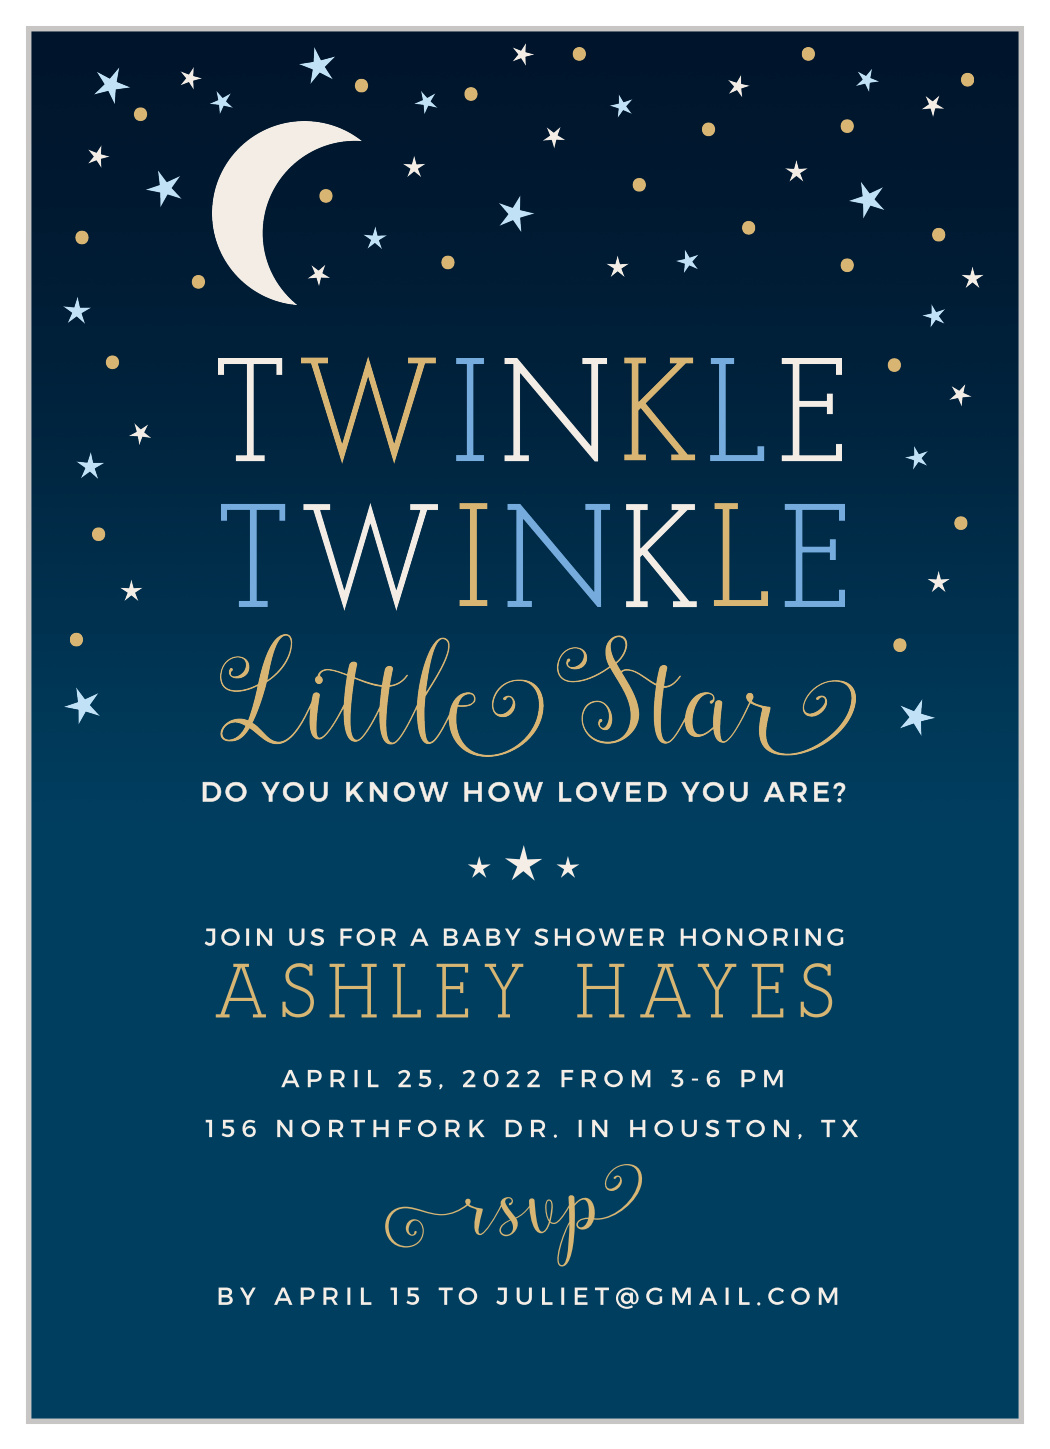 Moon and Star Twinkle Little Star Baby Shower Baptism Christening Birthday Invitation Invite to the Moon and Back